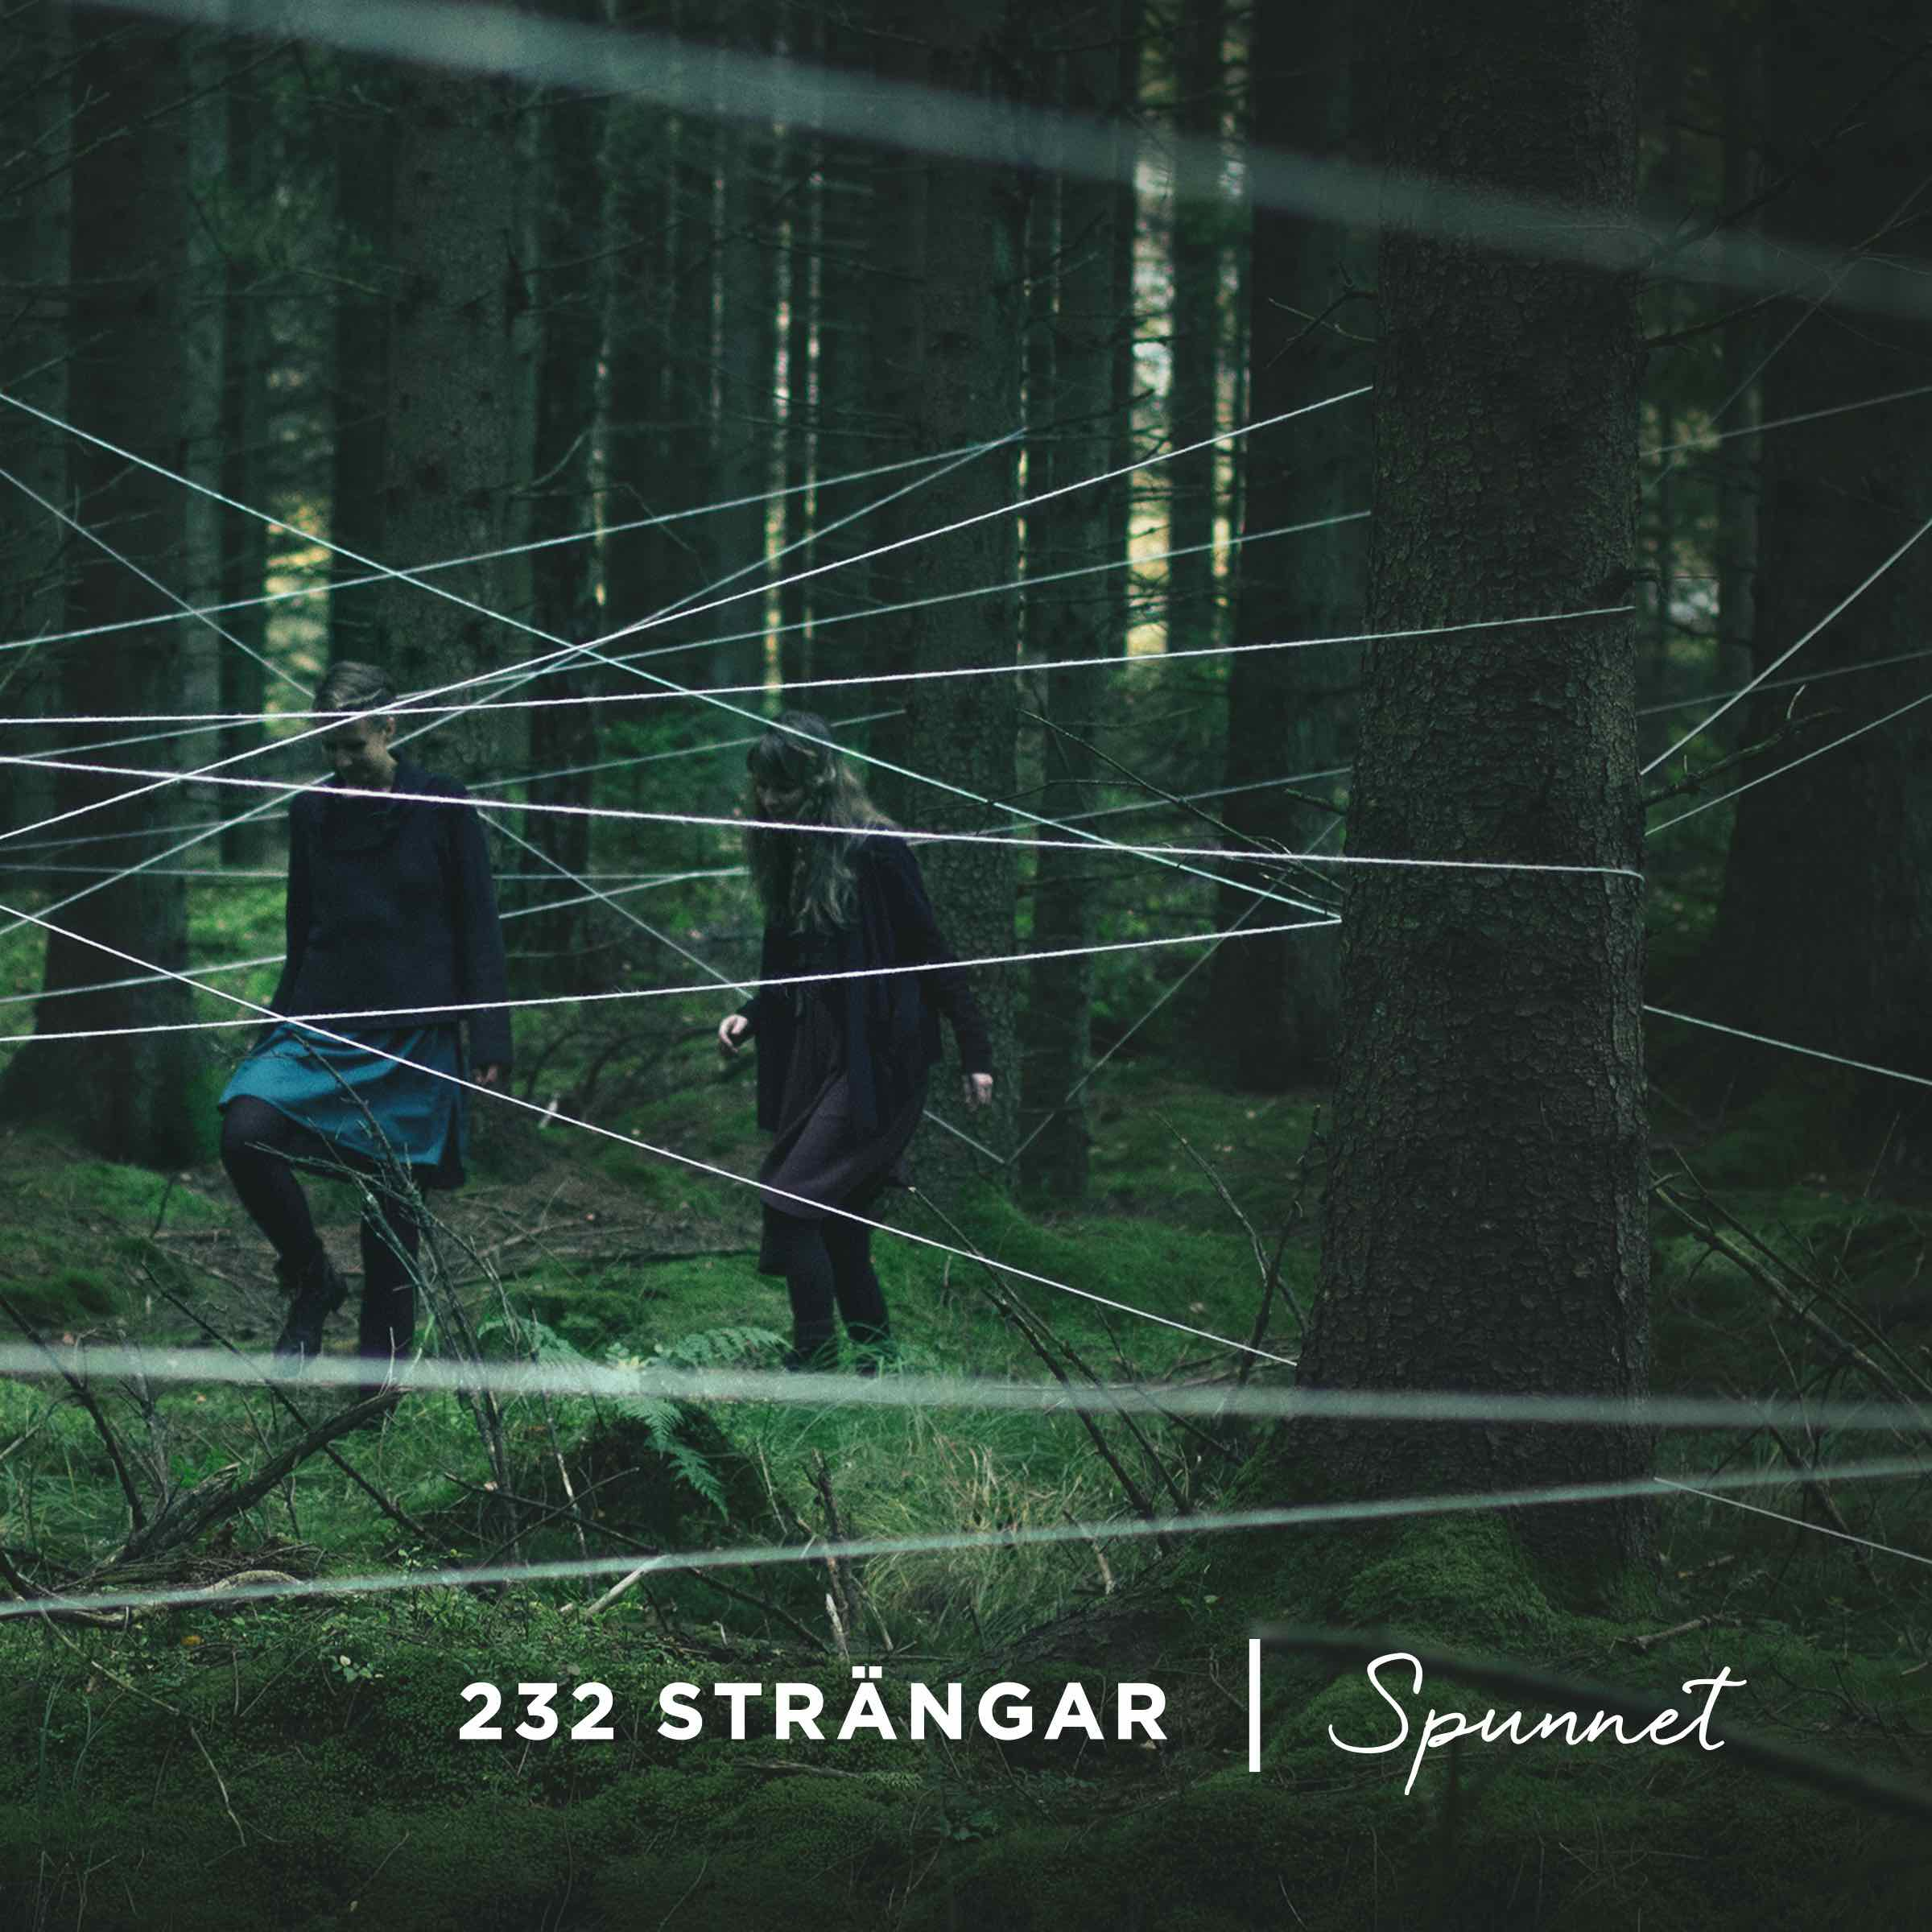 232 Strängar – Spunnet. DOWNLOAD: Visit iTunes Music Store or or your favourite download store. 232 Strängar - Spunnet monophon MPHFL004, 2016.